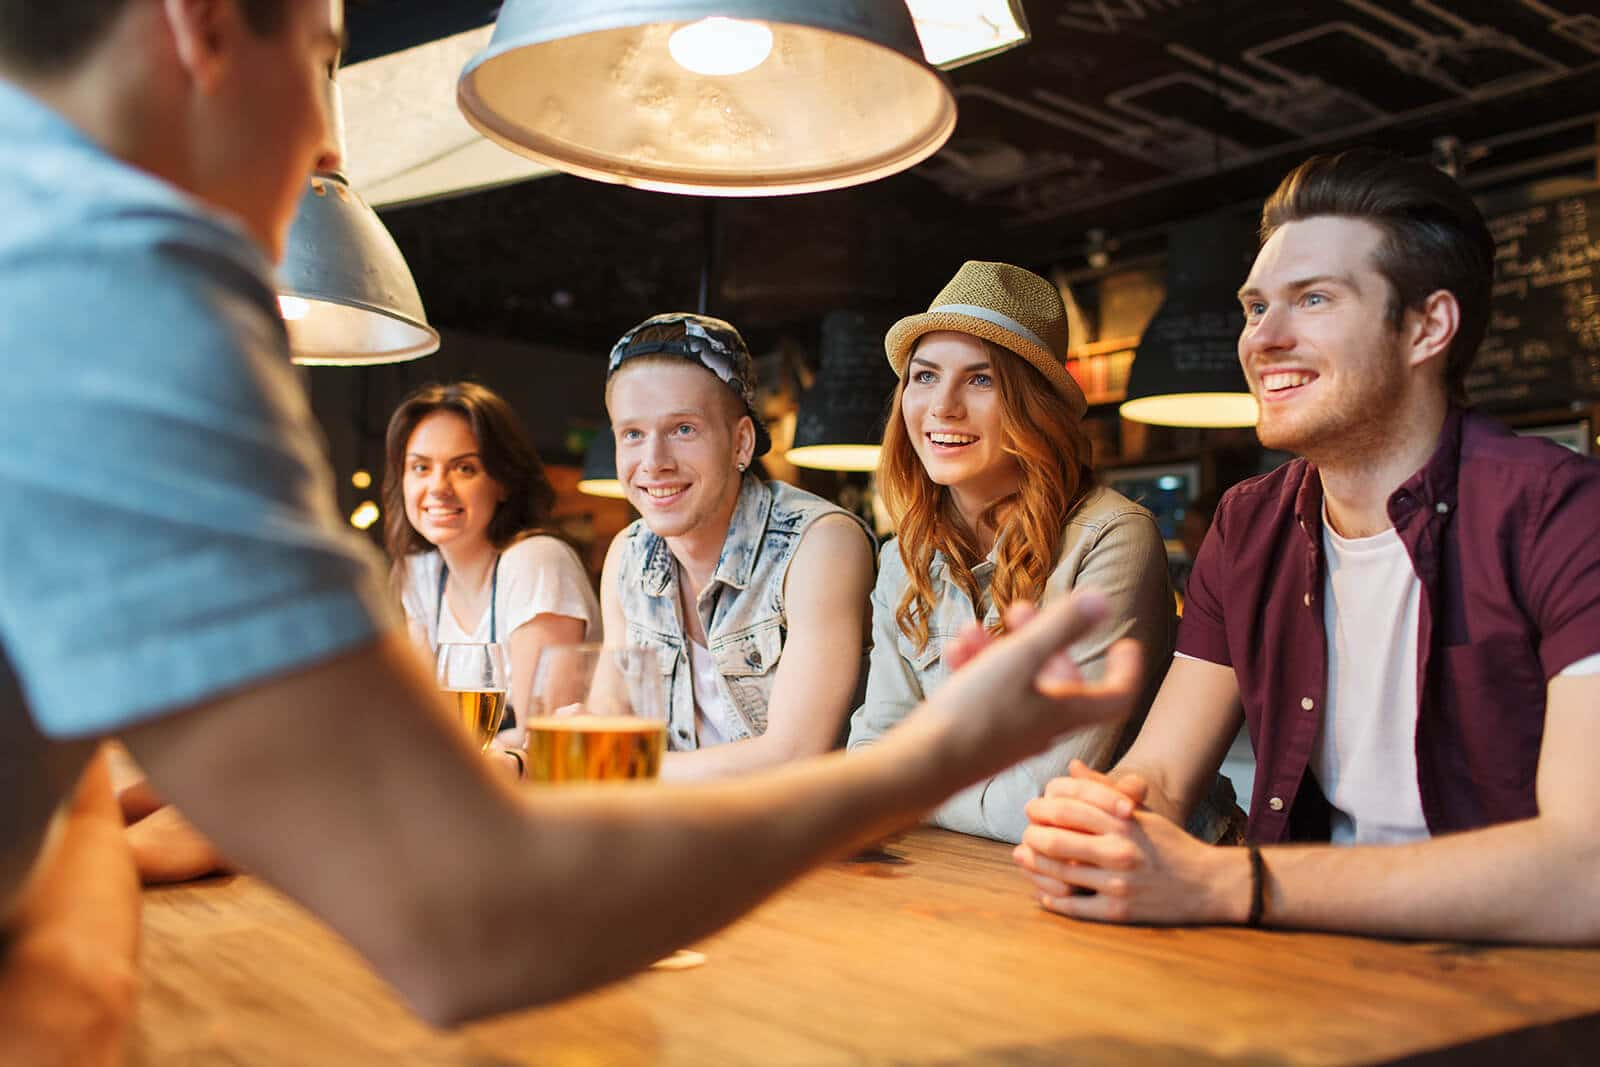 people, leisure, friendship and communication concept - group of happy smiling friends drinking beer and talking at bar or pub